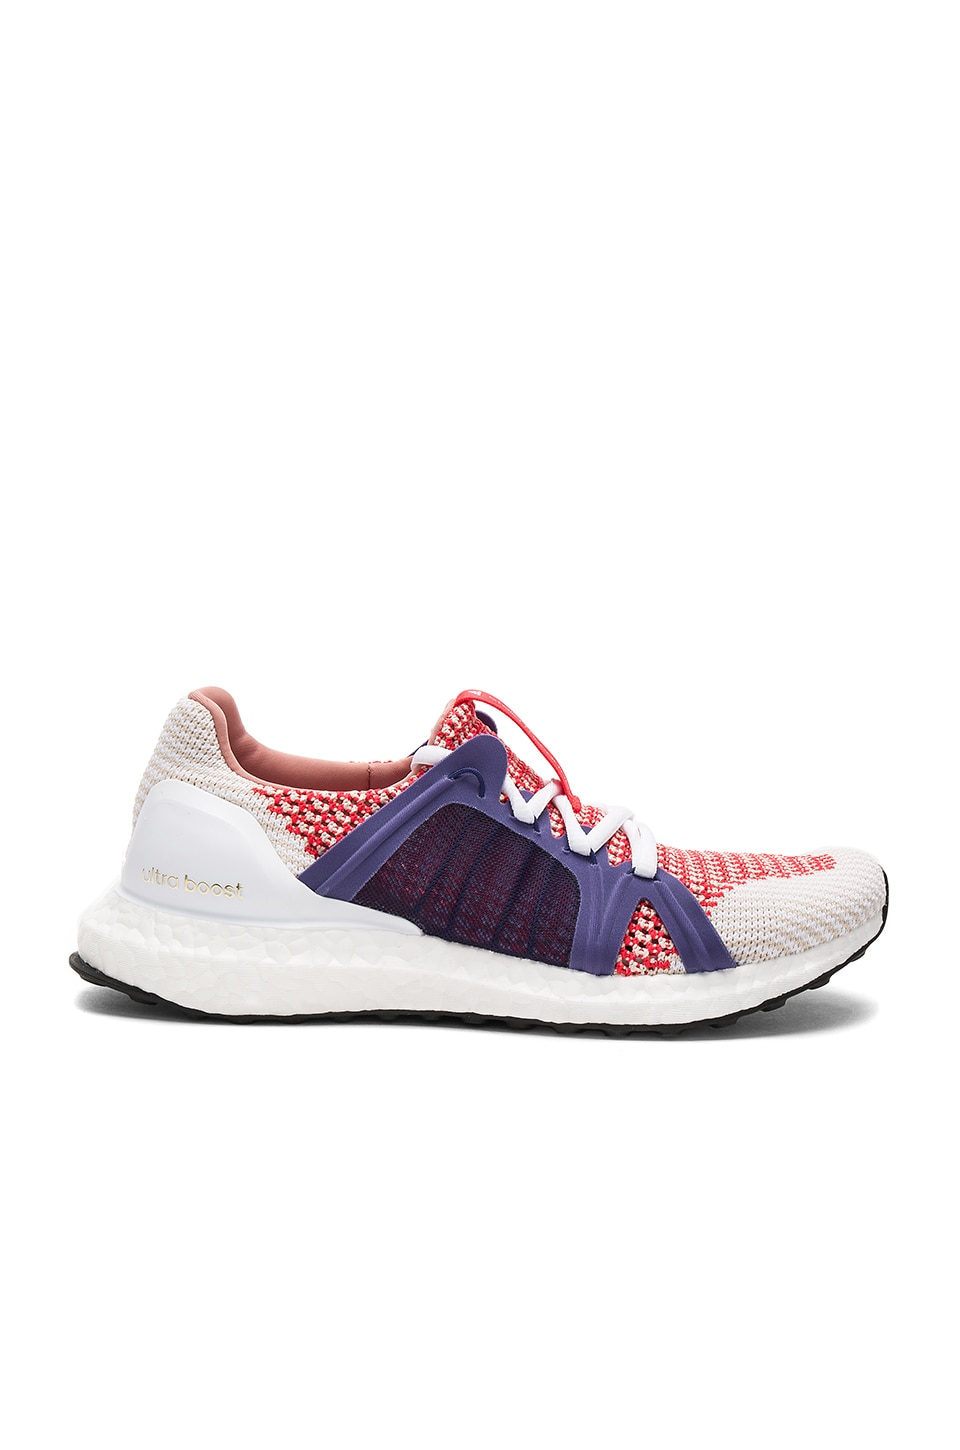 adidas by Stella McCartney Ultra Boost Sneaker in Bright Red & Plum